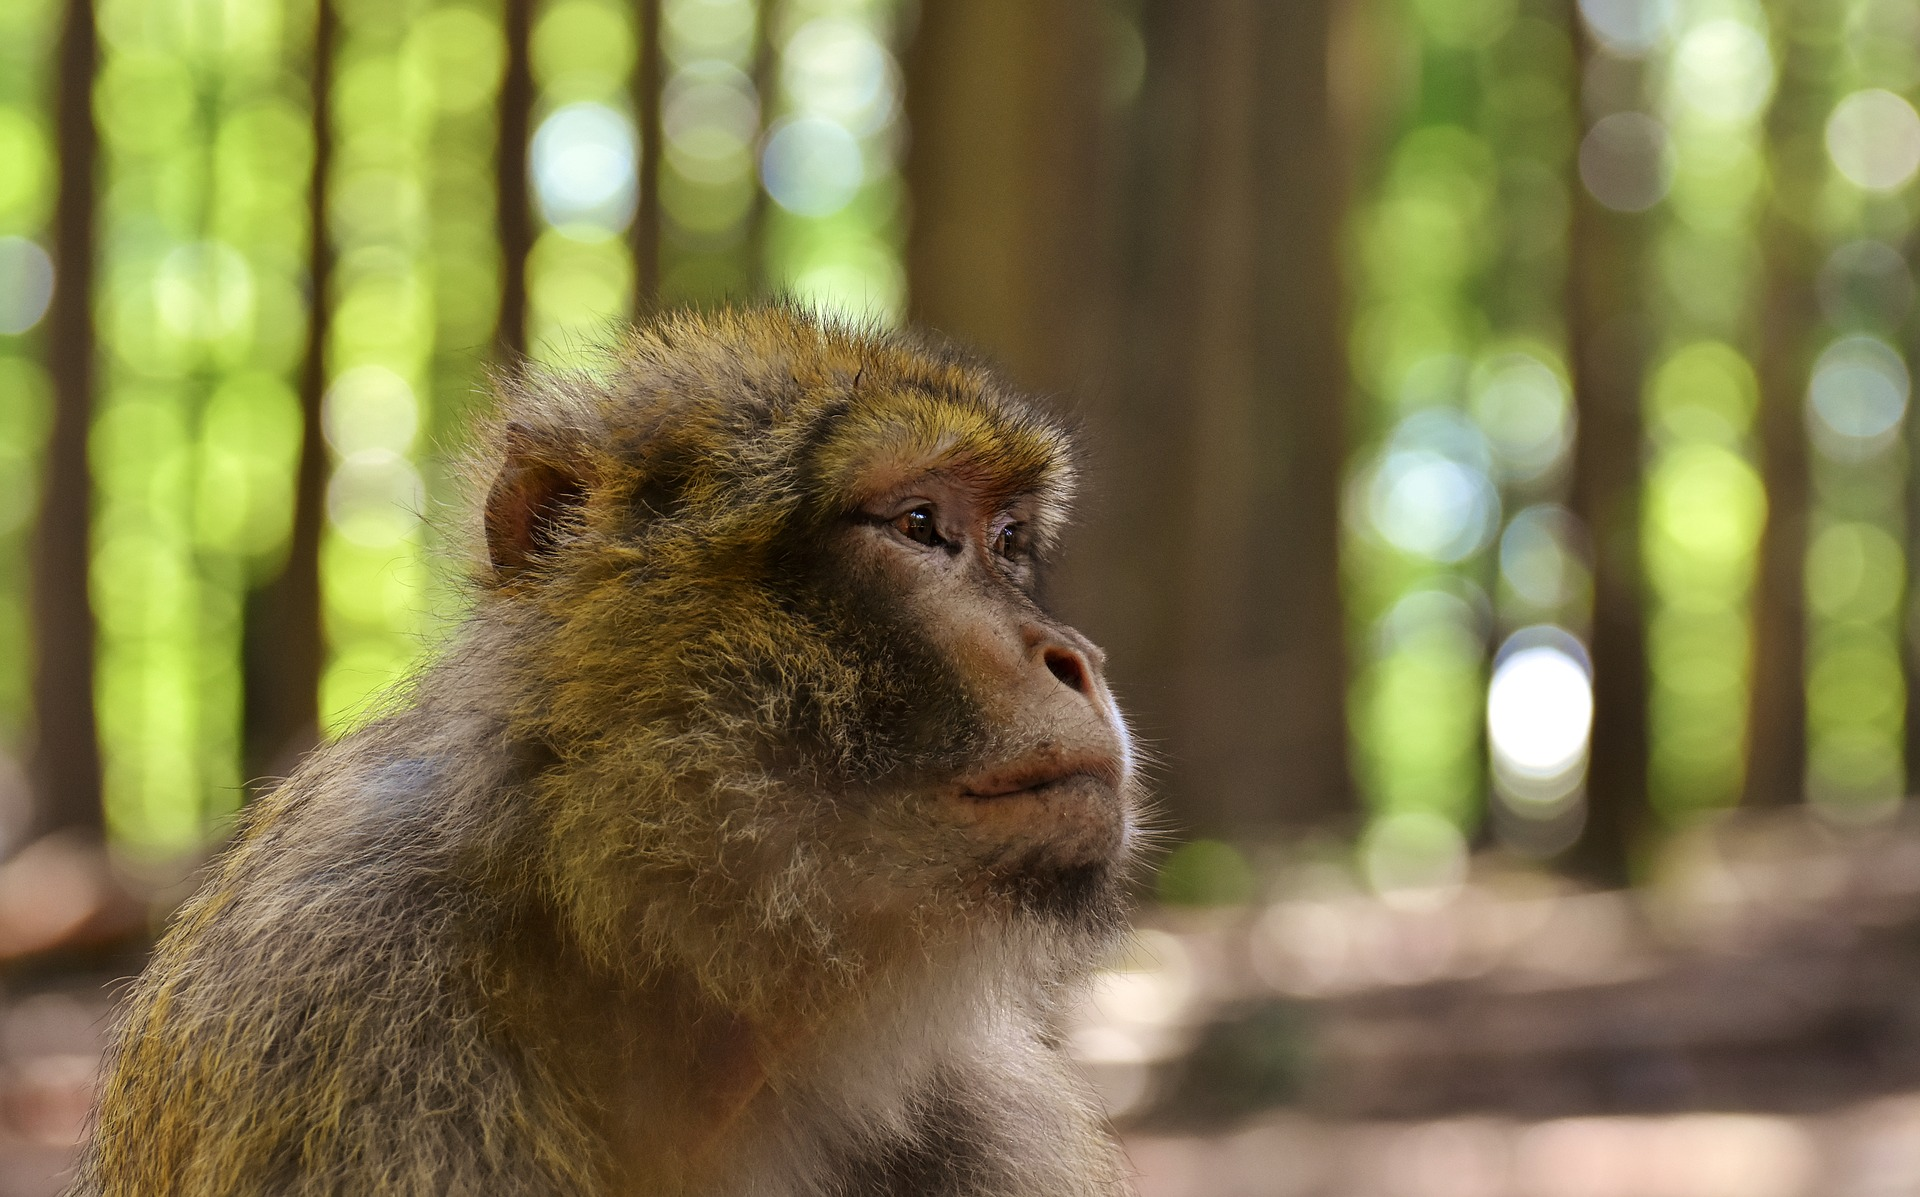 monkey endangered - It's Their Endangered World Too: How Global Warming Has Affected European Wildlife